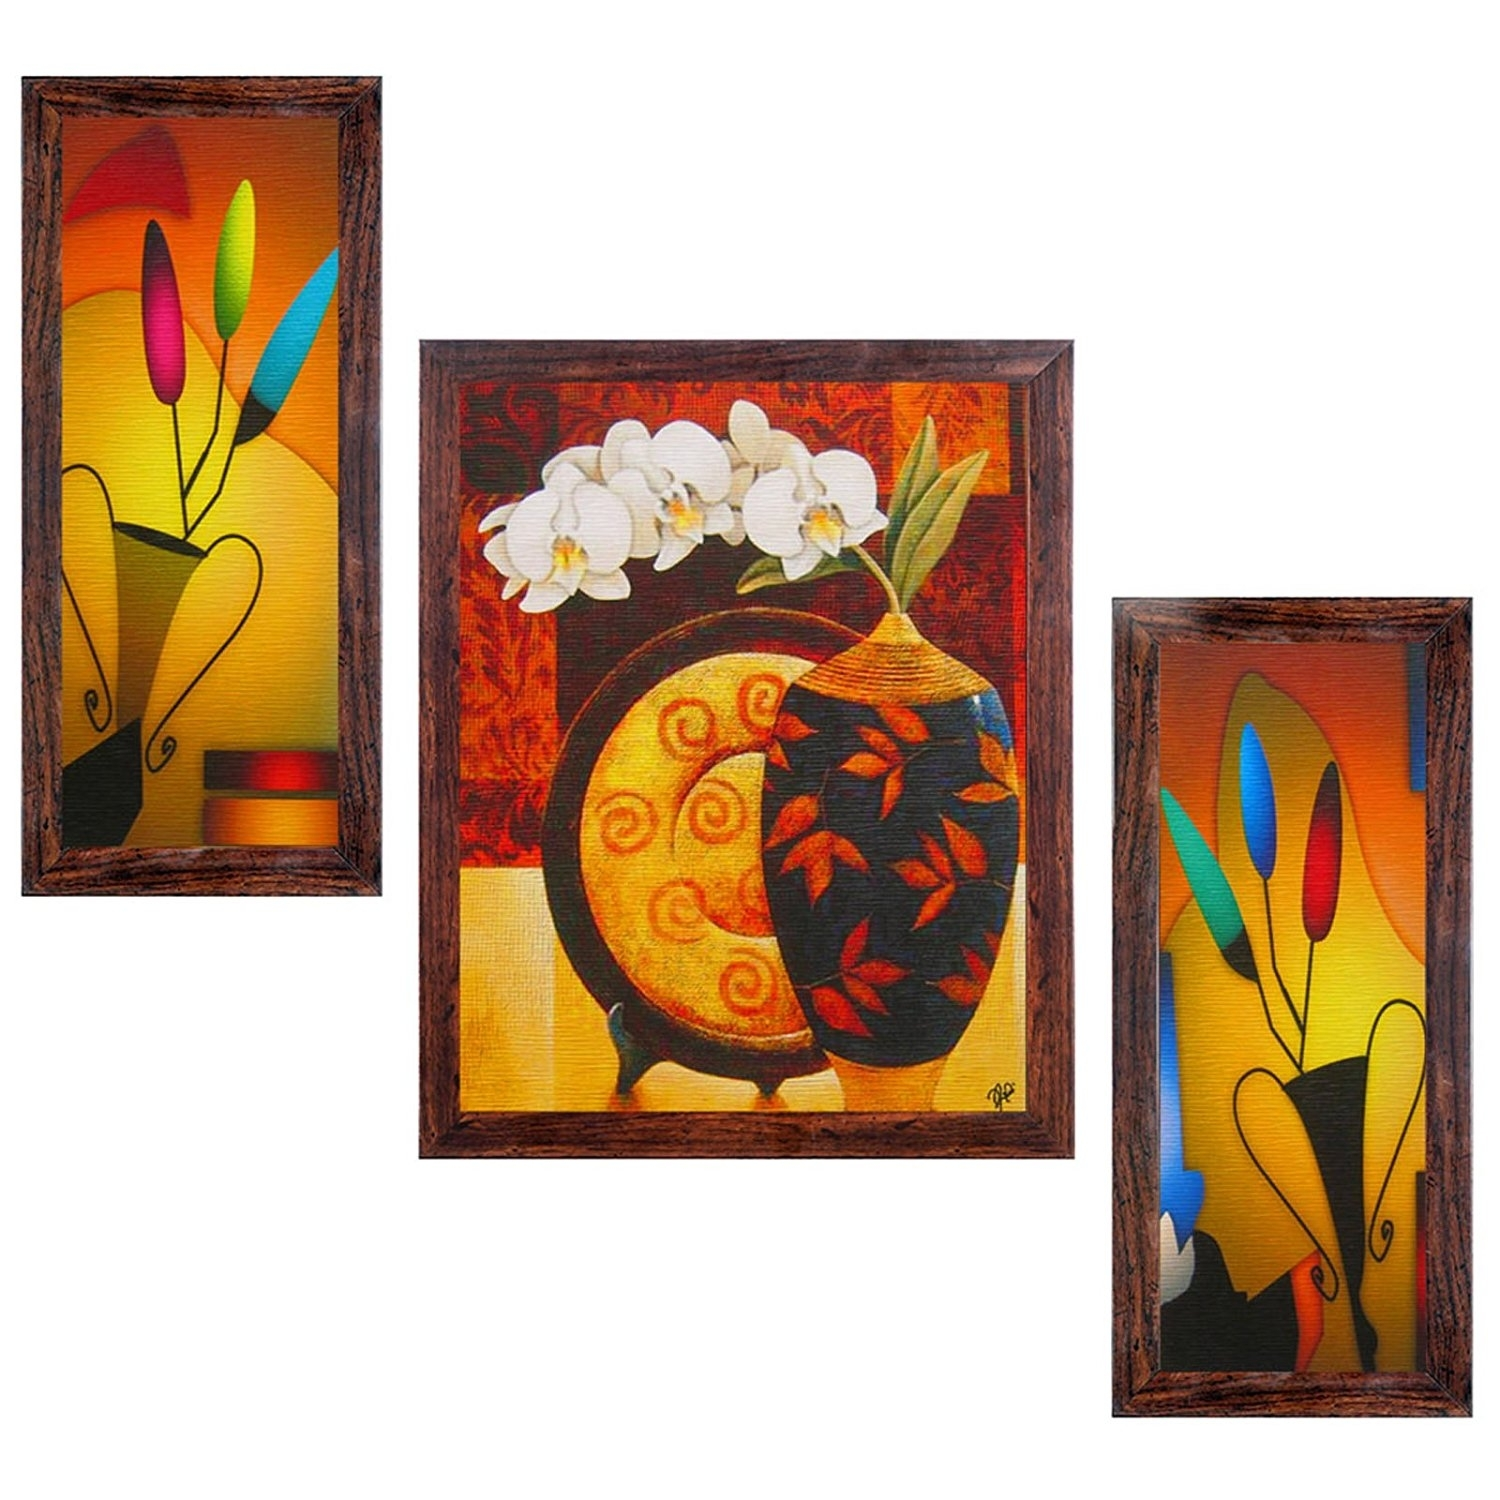 Xg Zsiwhl Sl Beautiful Wall Art Paintings - Home Design And Wall pertaining to Wall Art Paintings (Image 19 of 20)